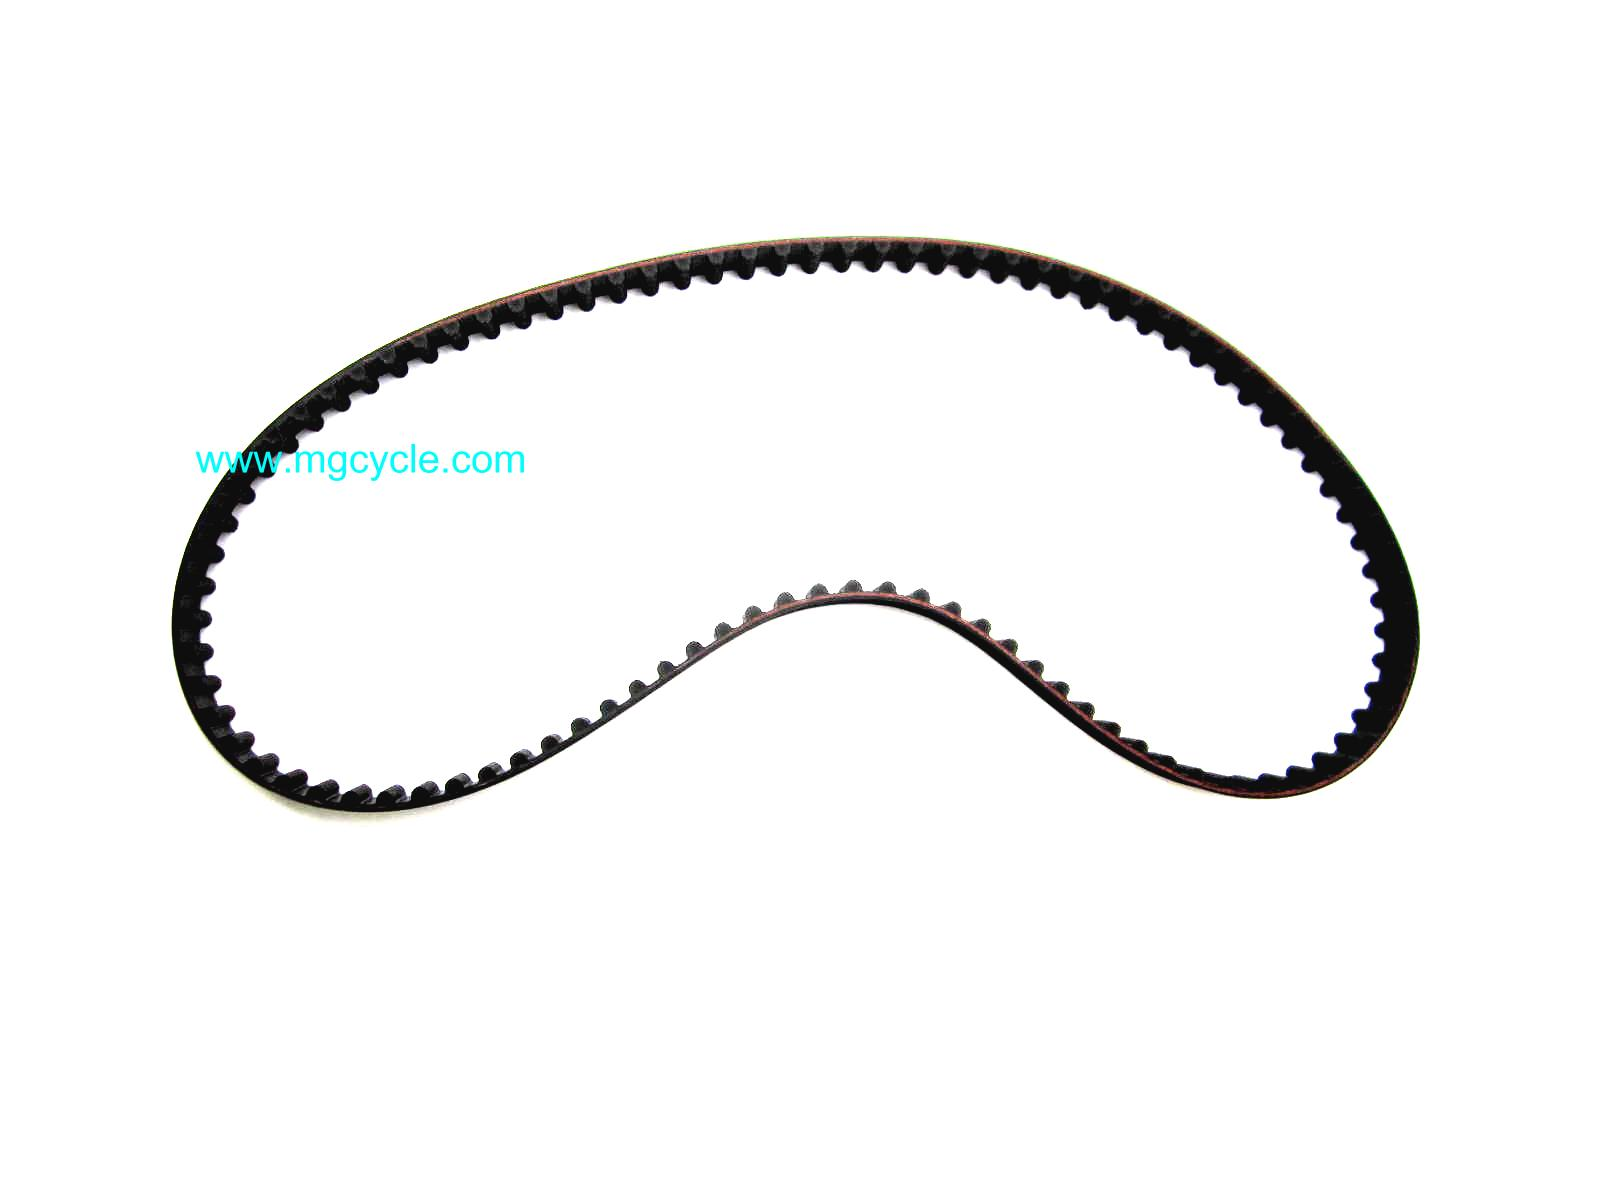 Timing belt for Ducati cam belt 73710101A